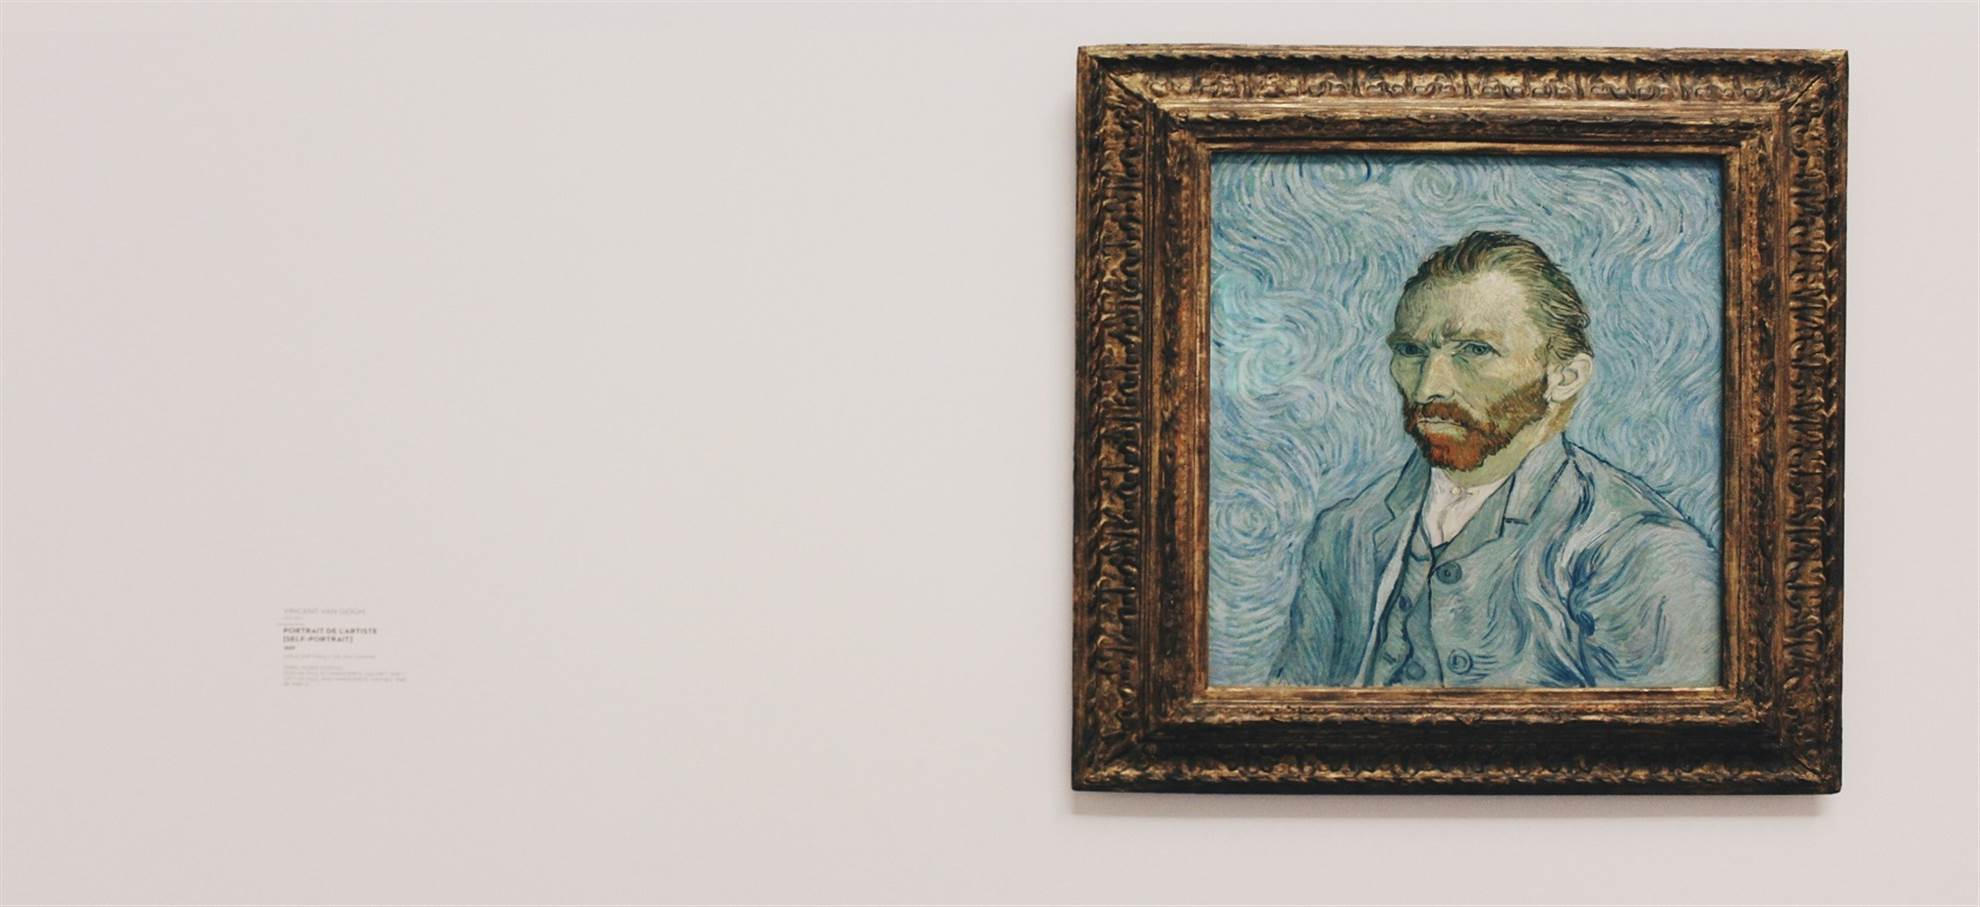 Van Gogh returns